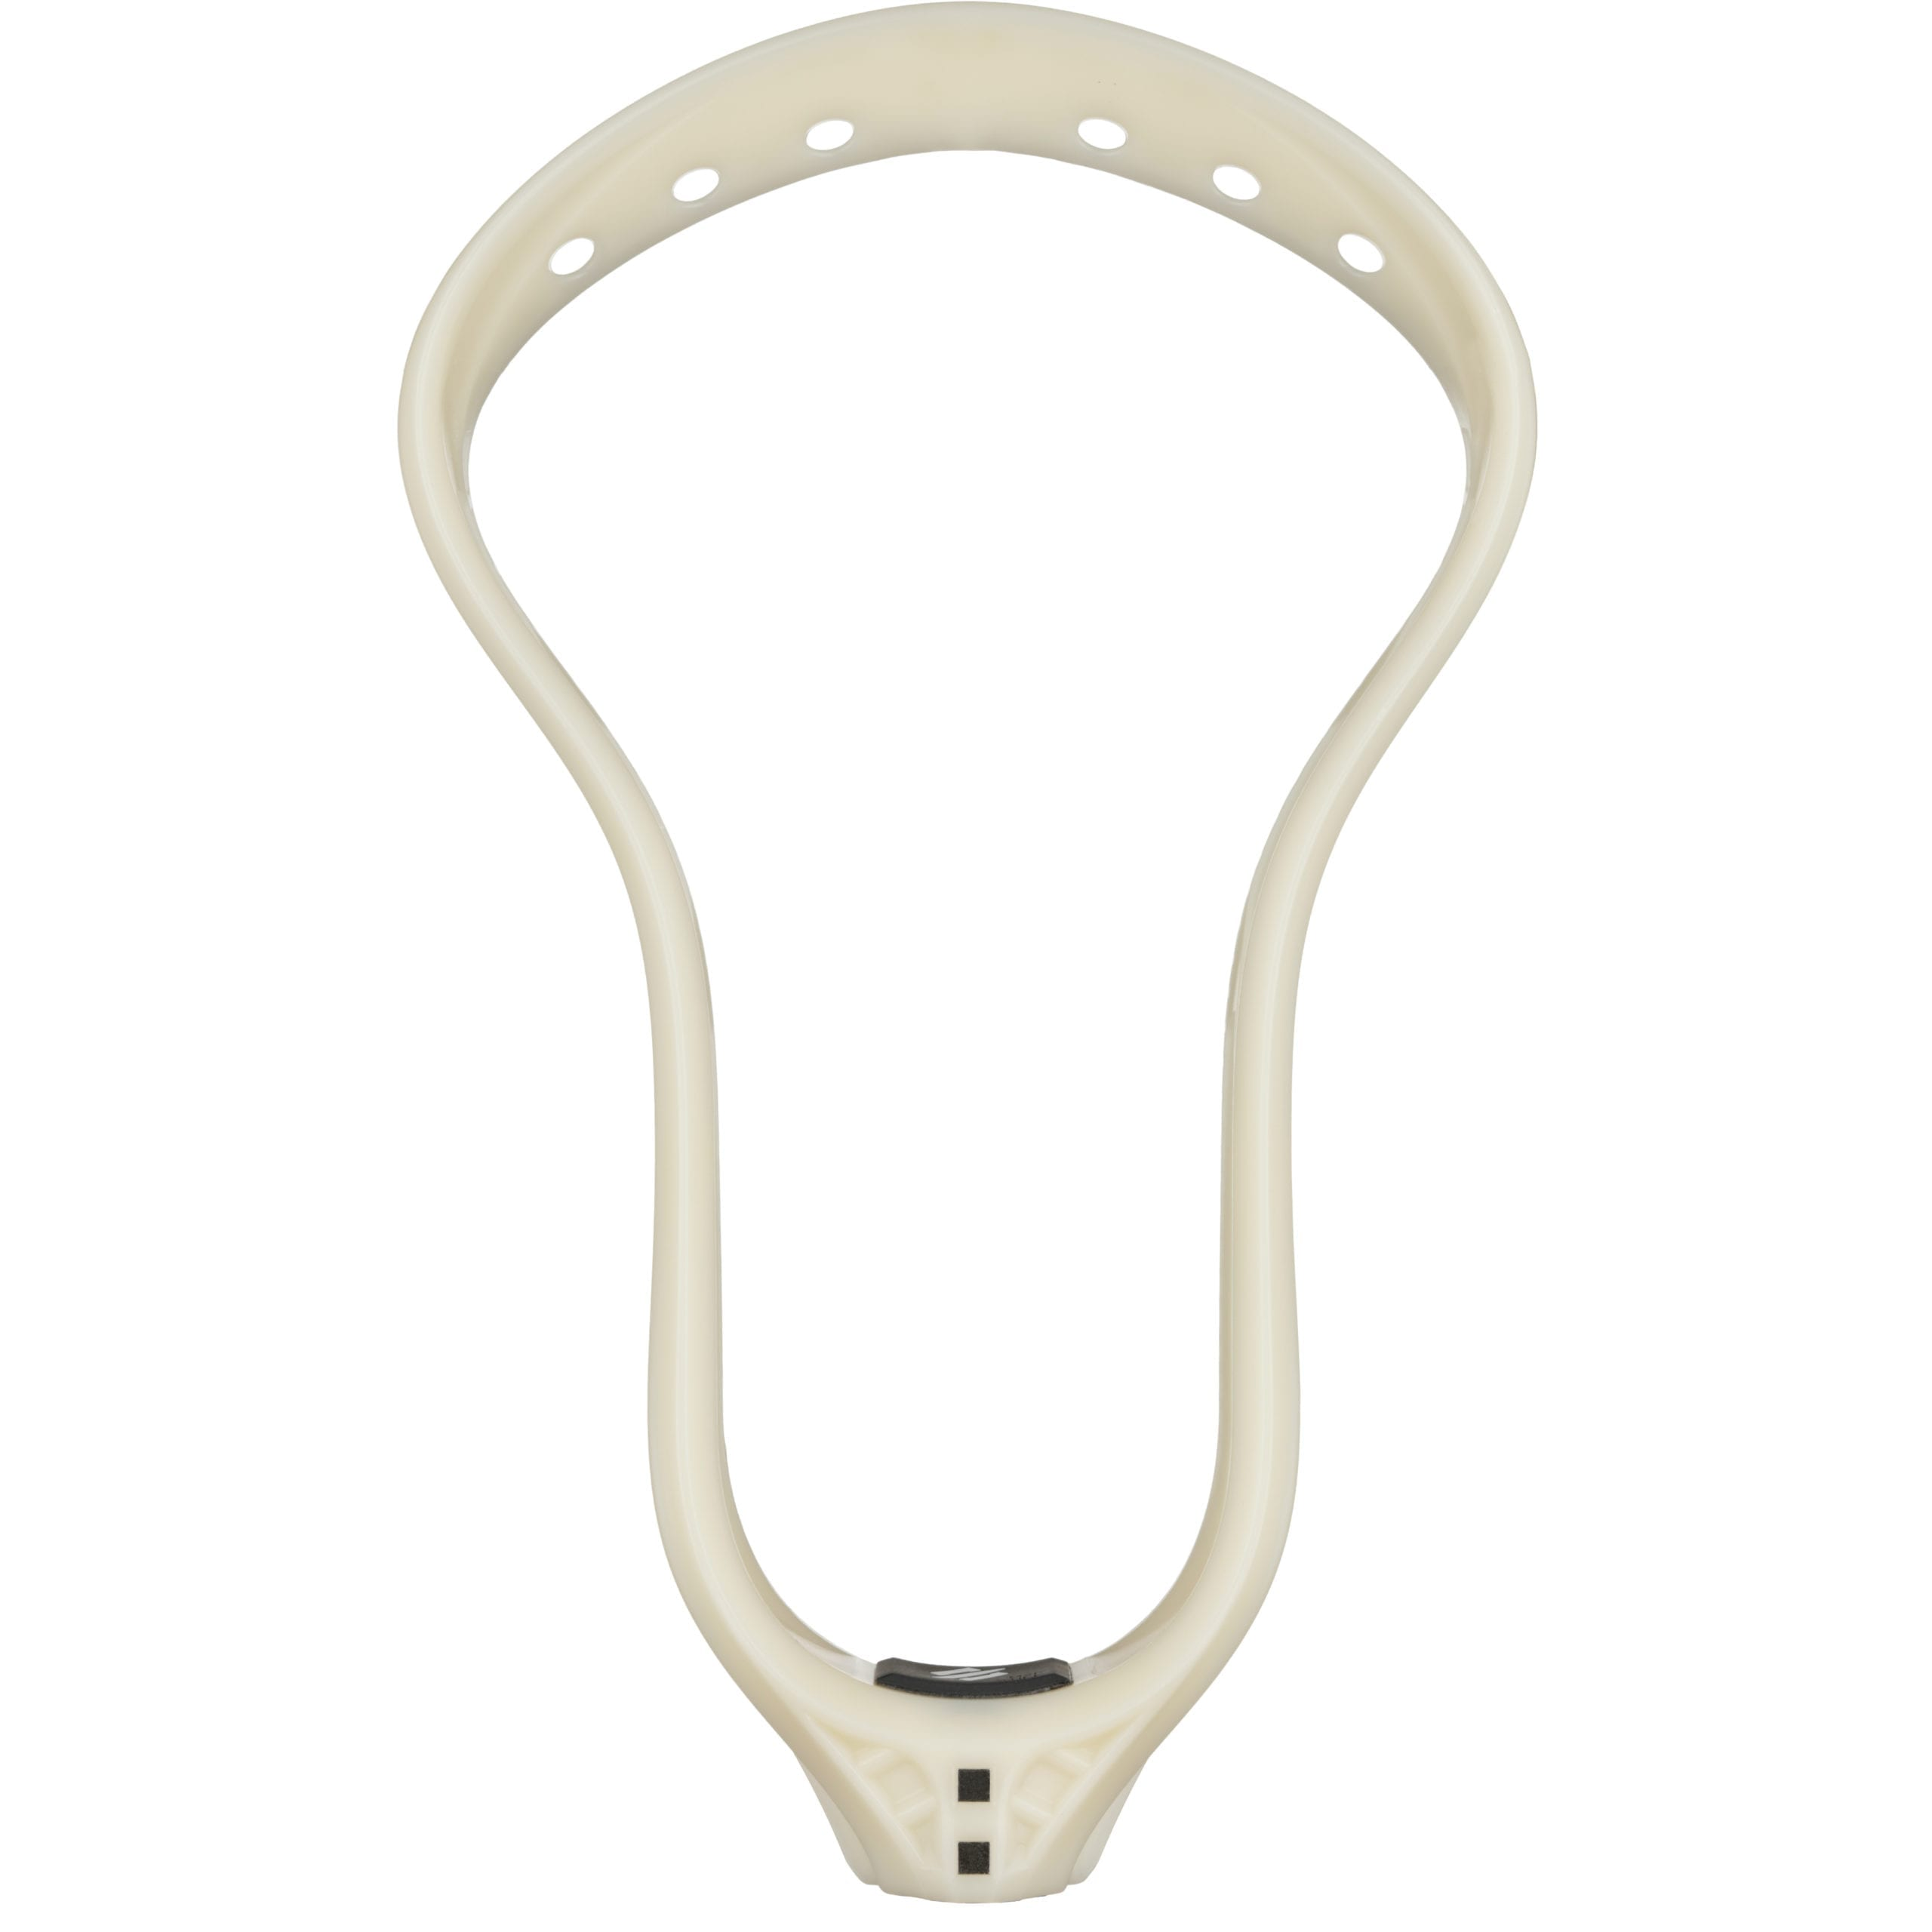 StringKing-Mark-2F-Stiff-Faceoff-Lacrosse-Head-Raw-Unstrung-Face-scaled-1.jpg